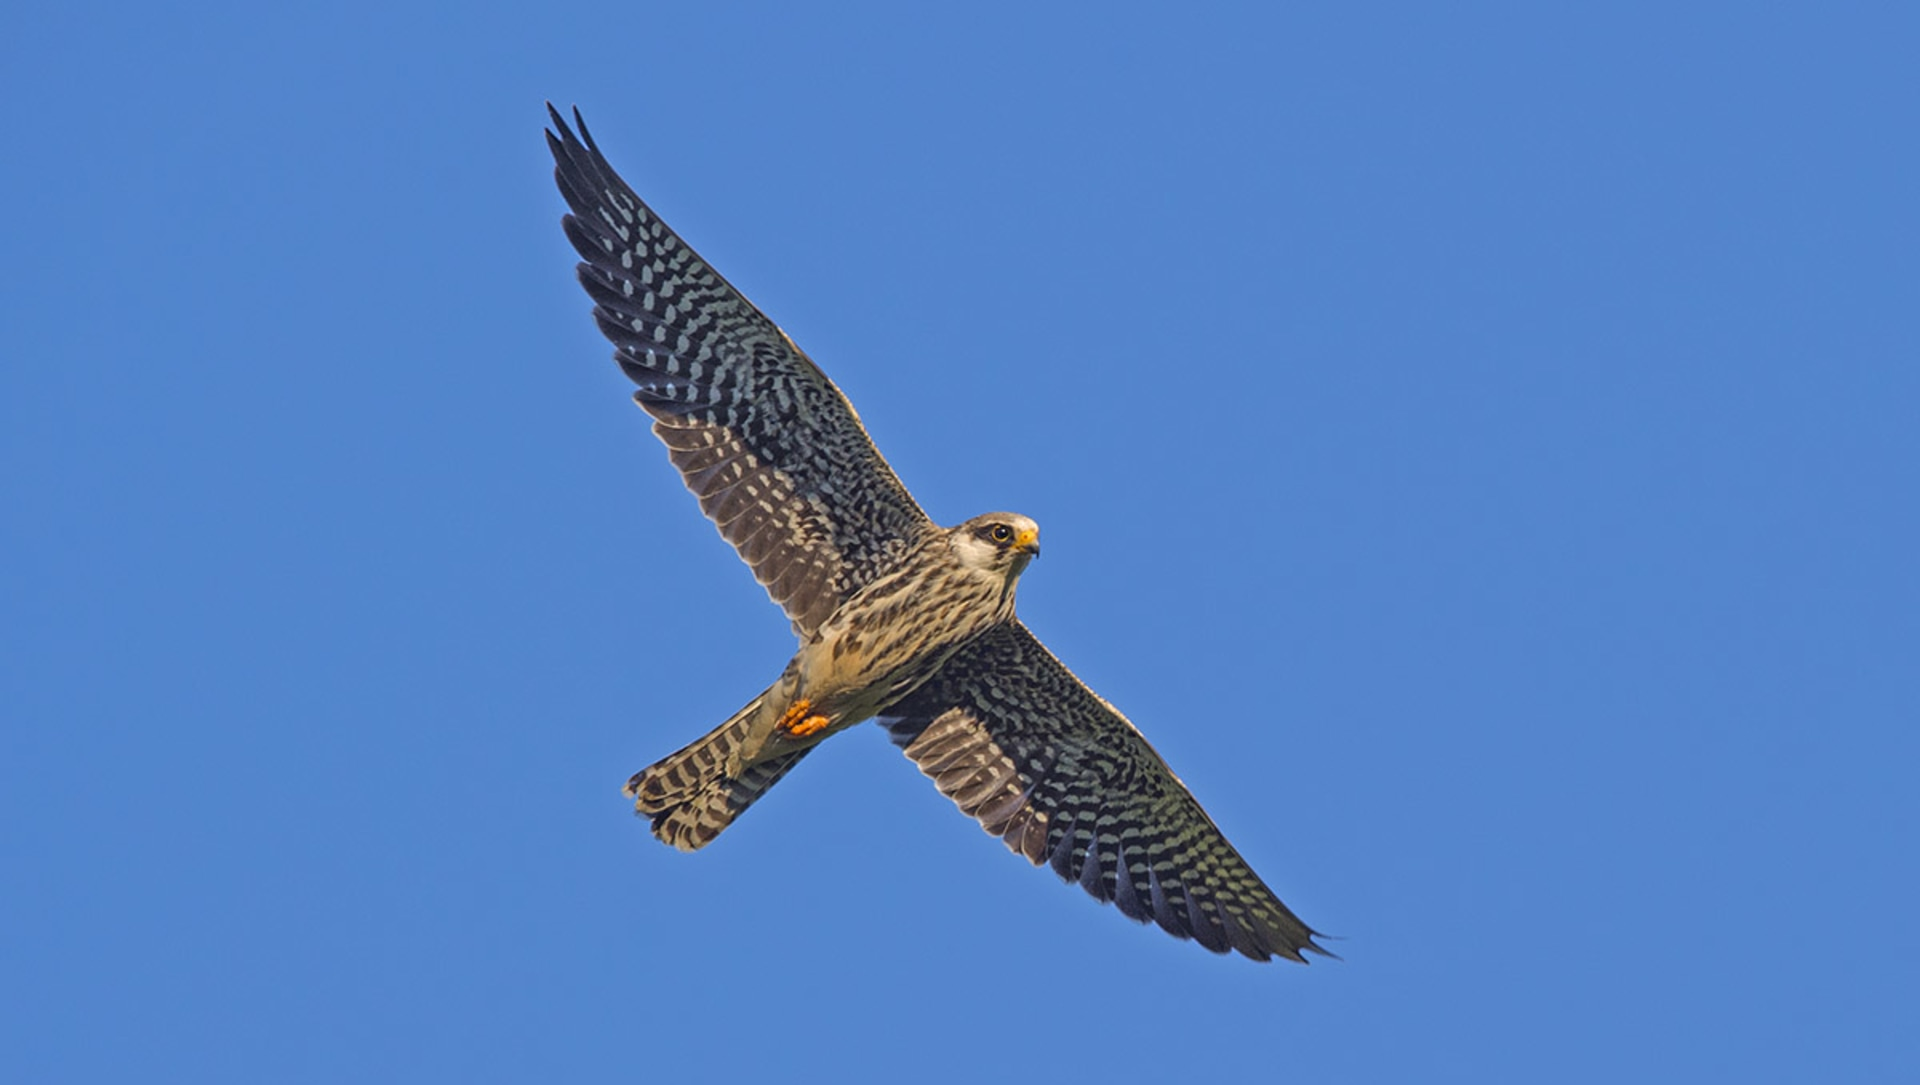 Flight of the Falcons: Migration, Conservation, and Great Resilience